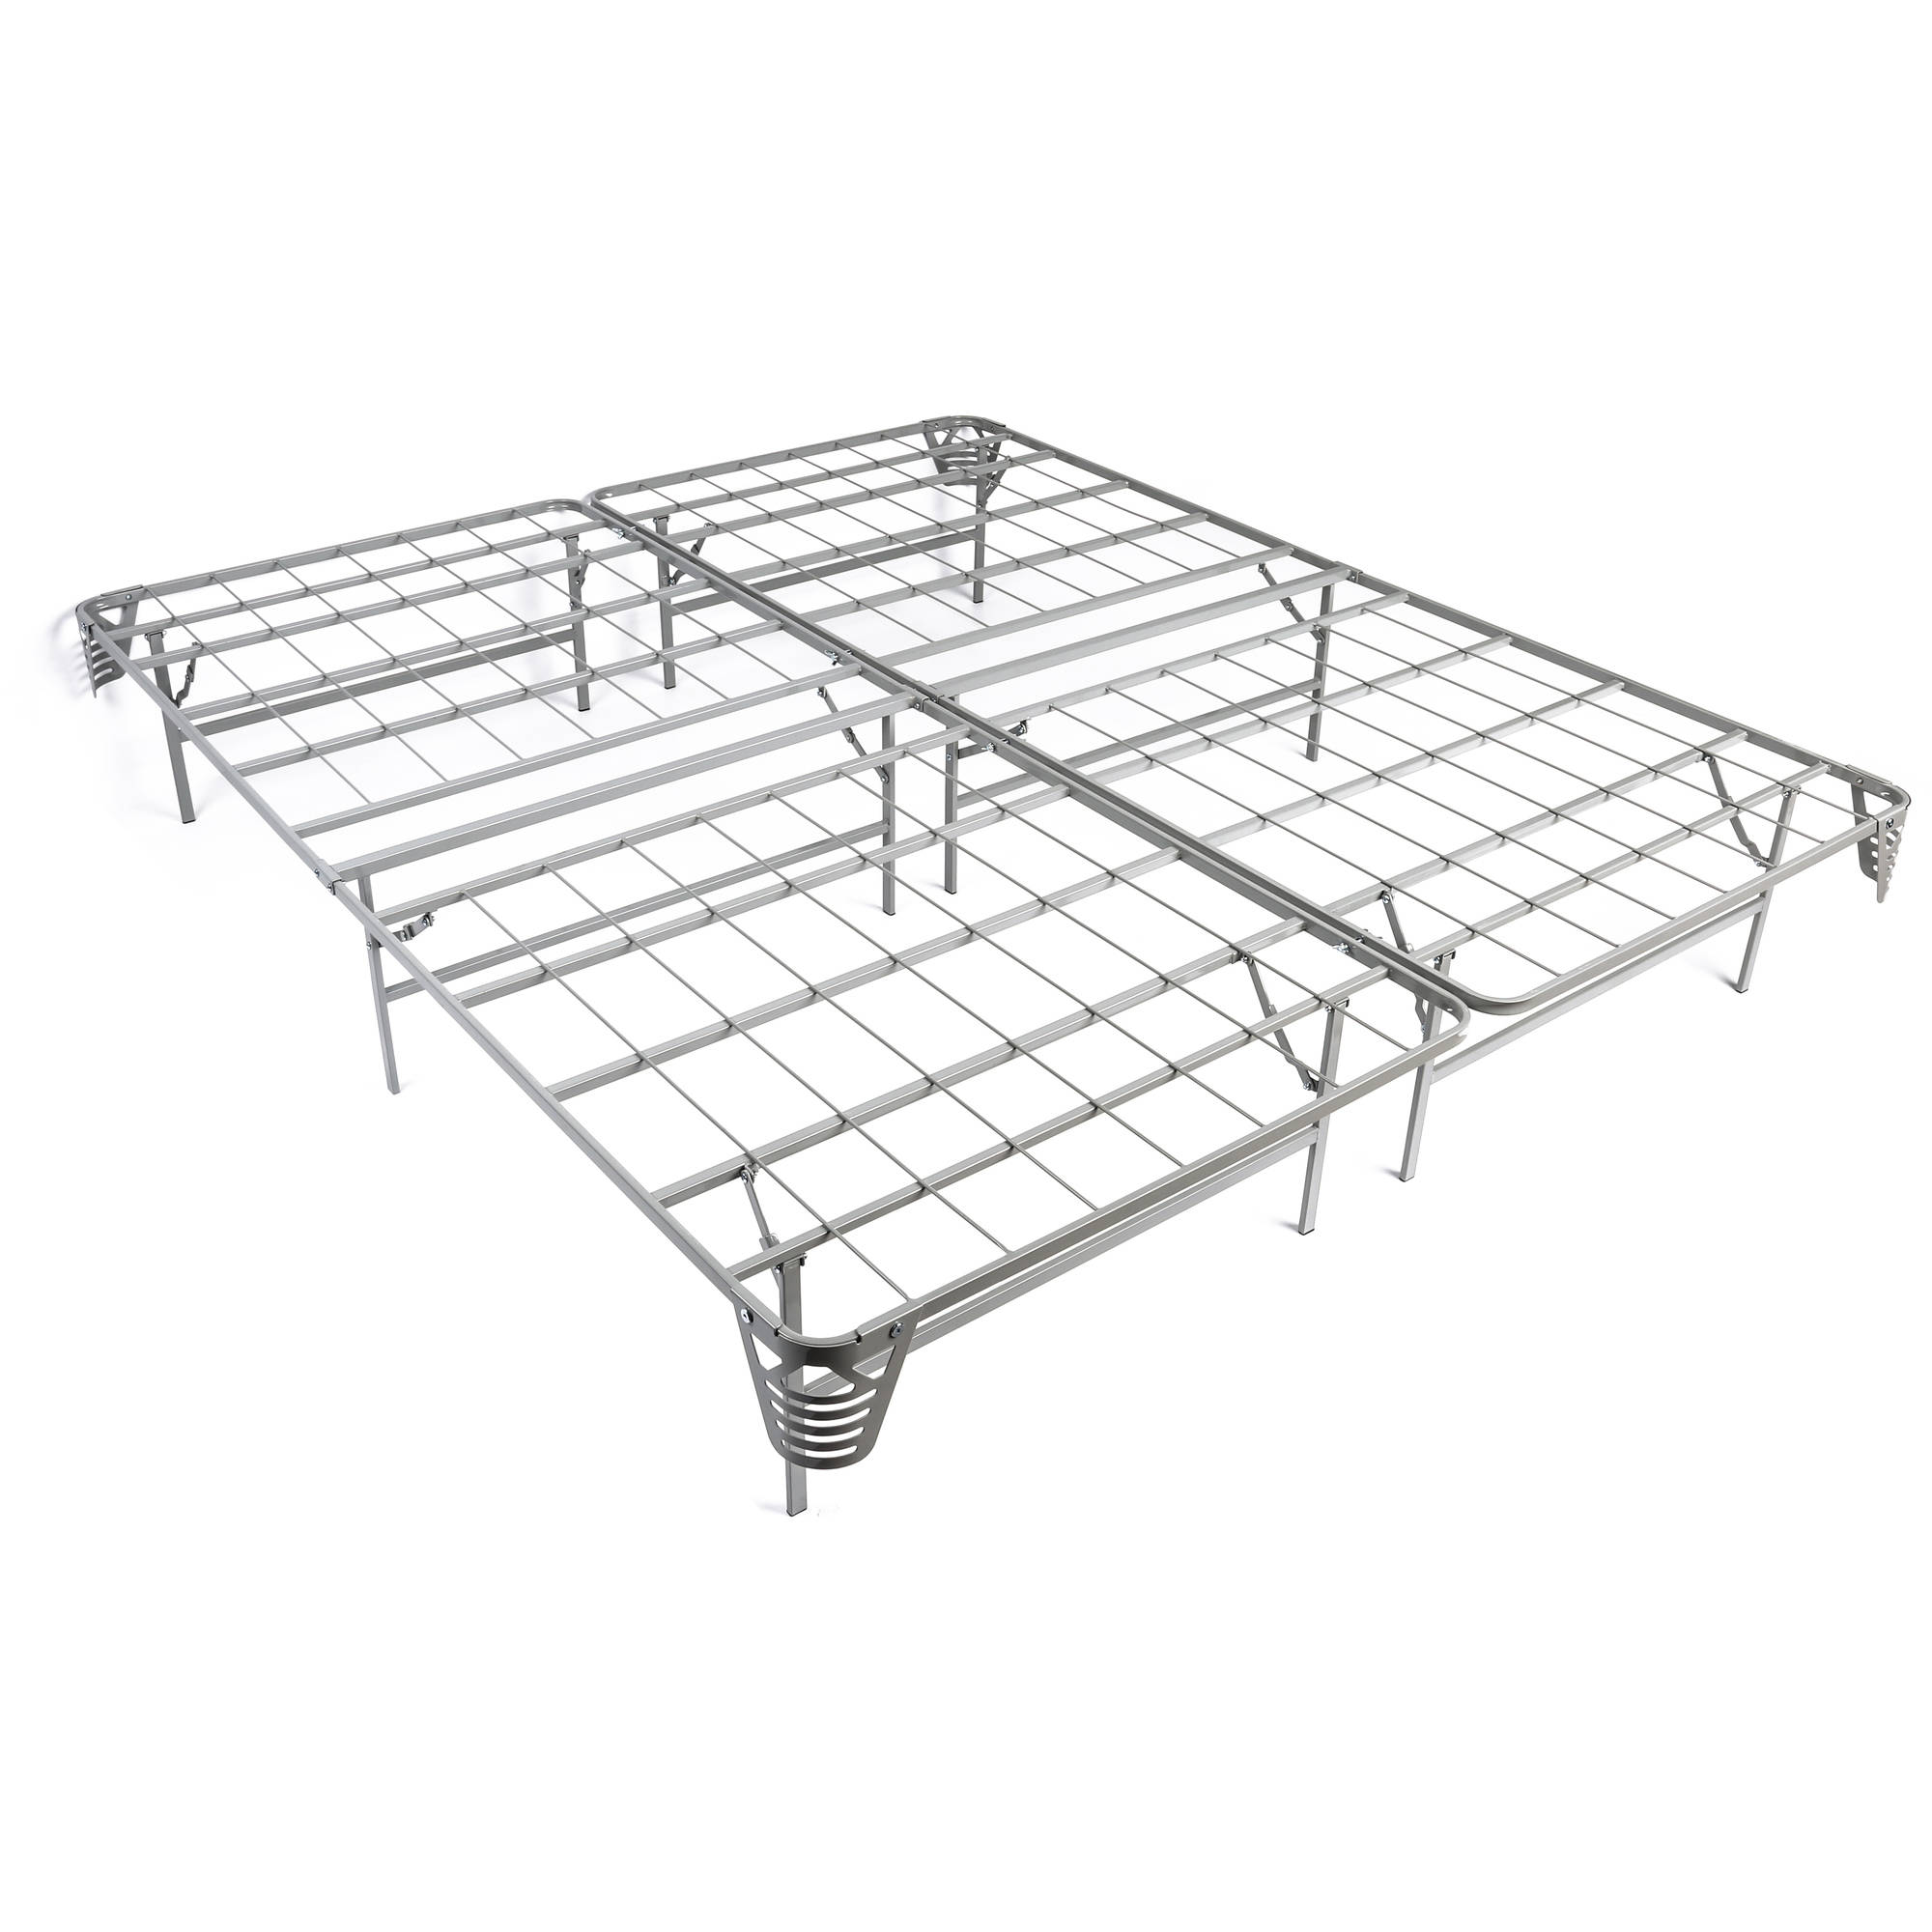 miBasics Cira Silver Metal Mattress Foundation, Multiple Sizes